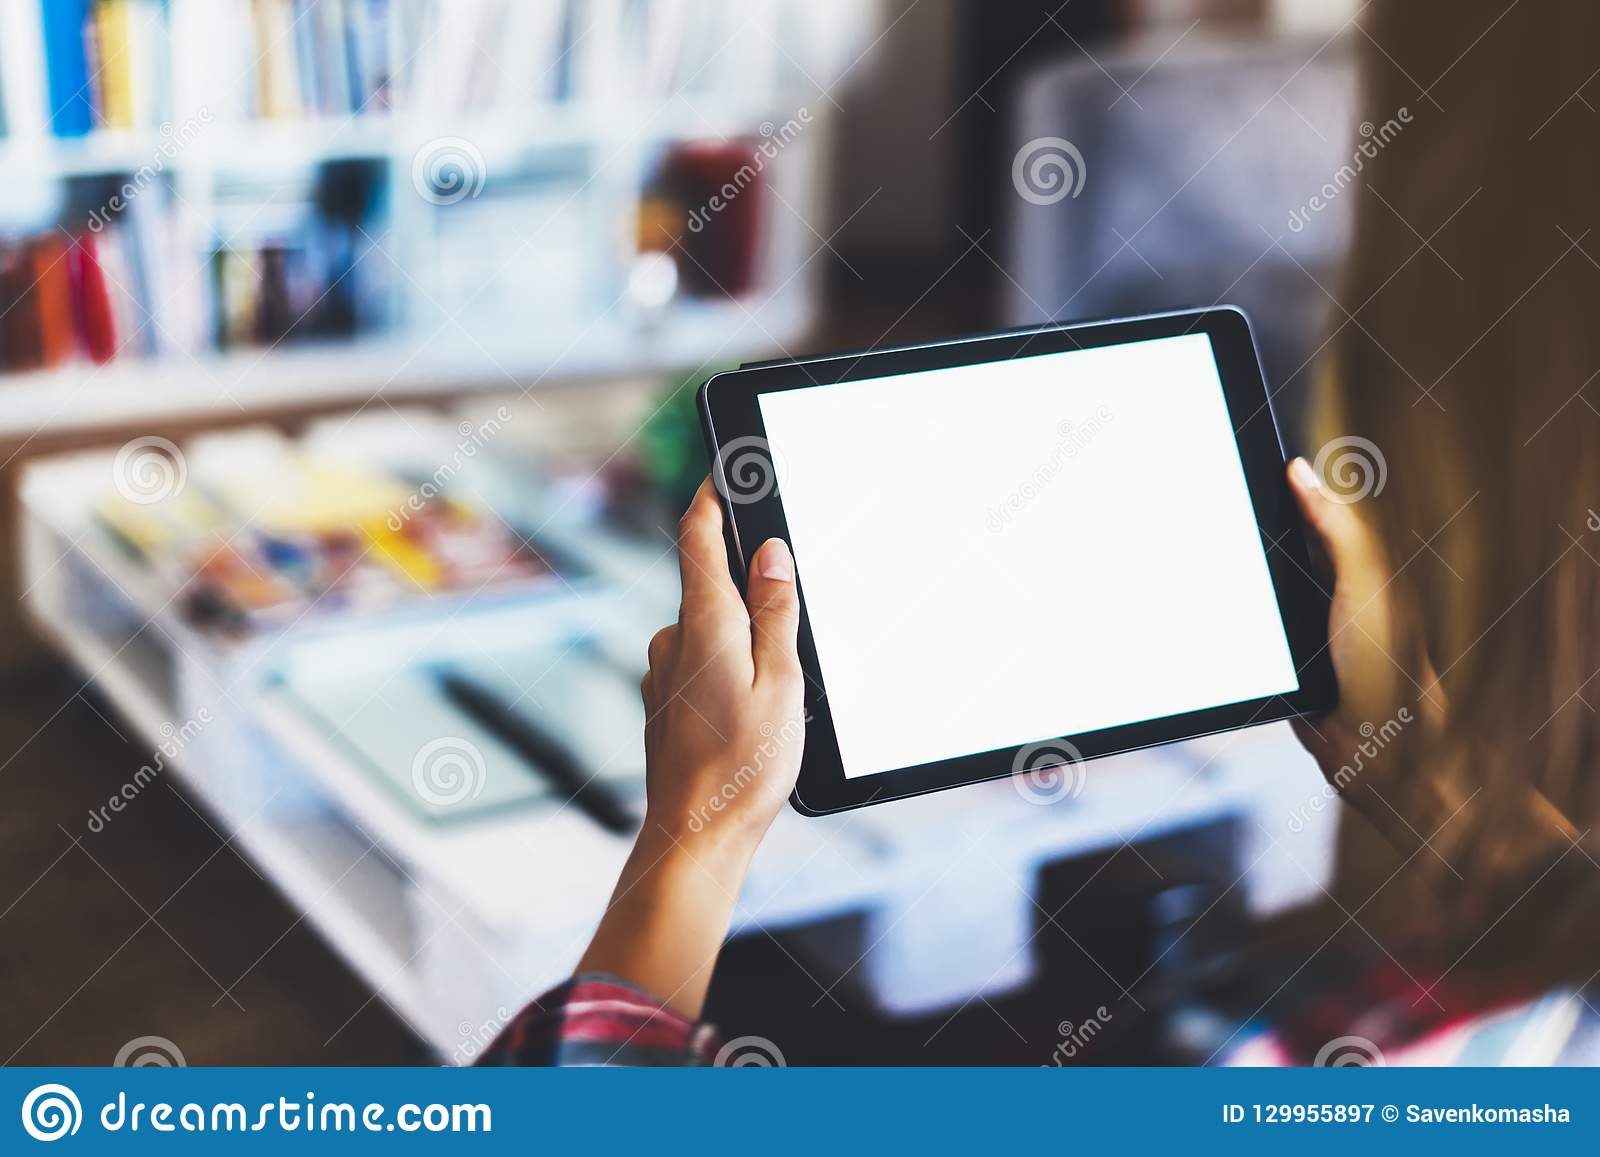 Hipster girl using tablet technology in home, blogger girl person holding computer with blank screen on background bokeh, female